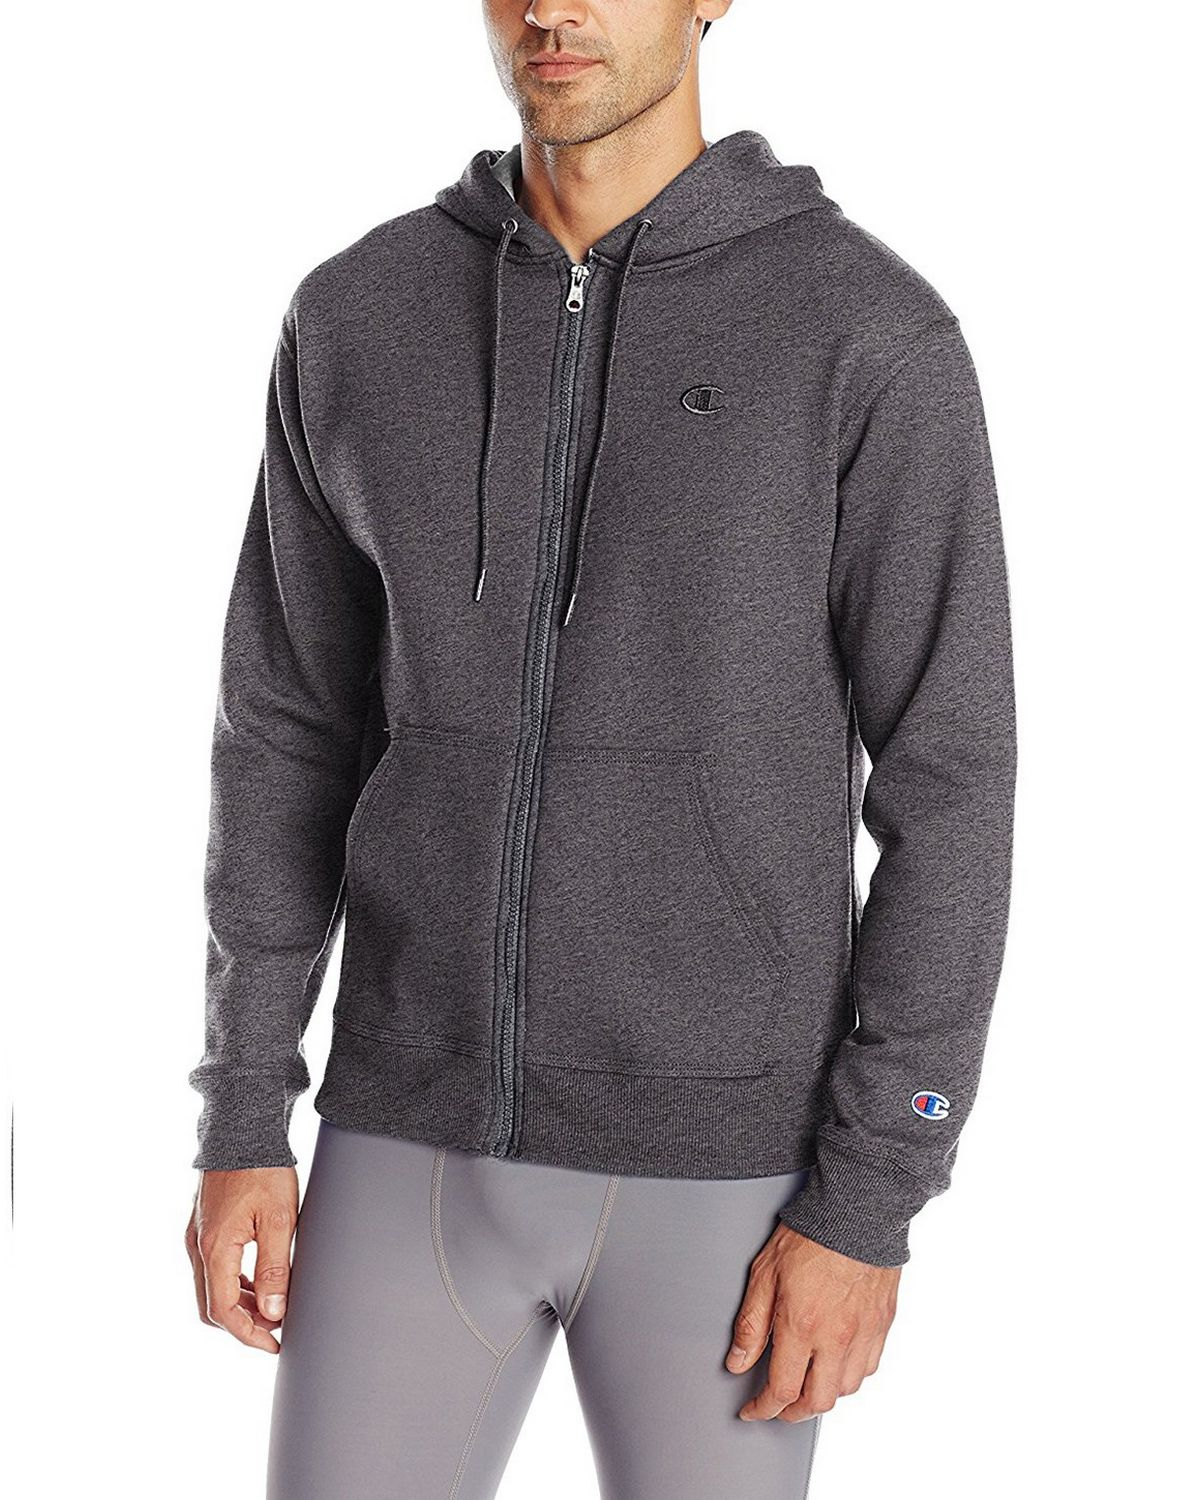 Champion S0891 Mens Fleece Full Zip Jacket - Granite Heather - S S0891